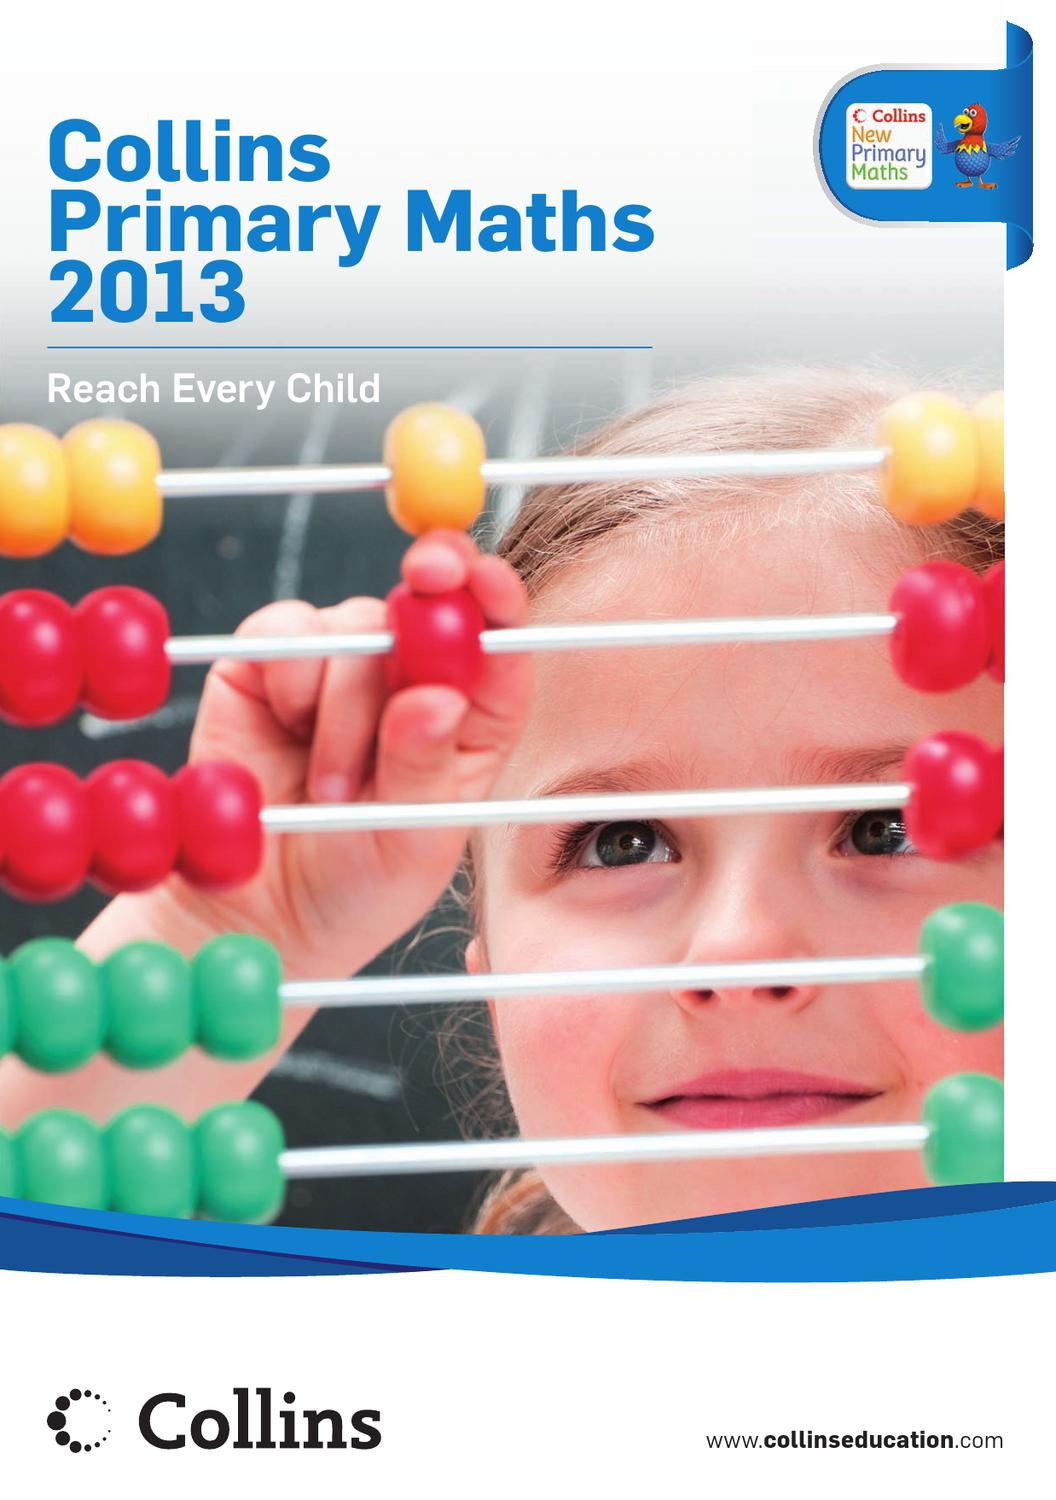 Collins Primary Maths Catalogue 2013 By Collins Issuu [ 1500 x 1056 Pixel ]